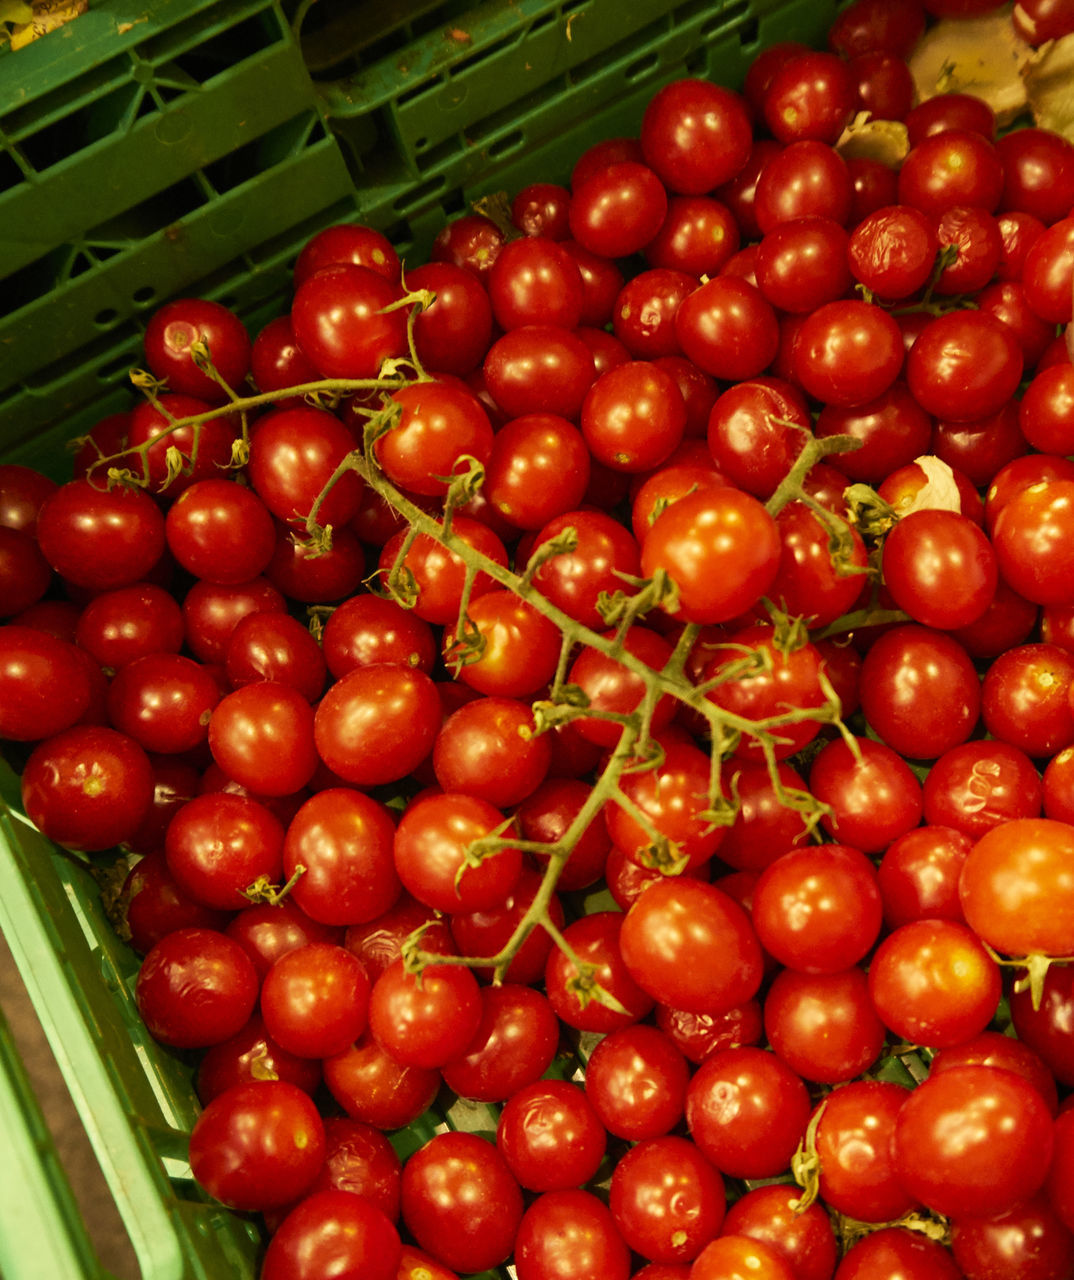 High Angle View Of Tomatoes In Crate At Market